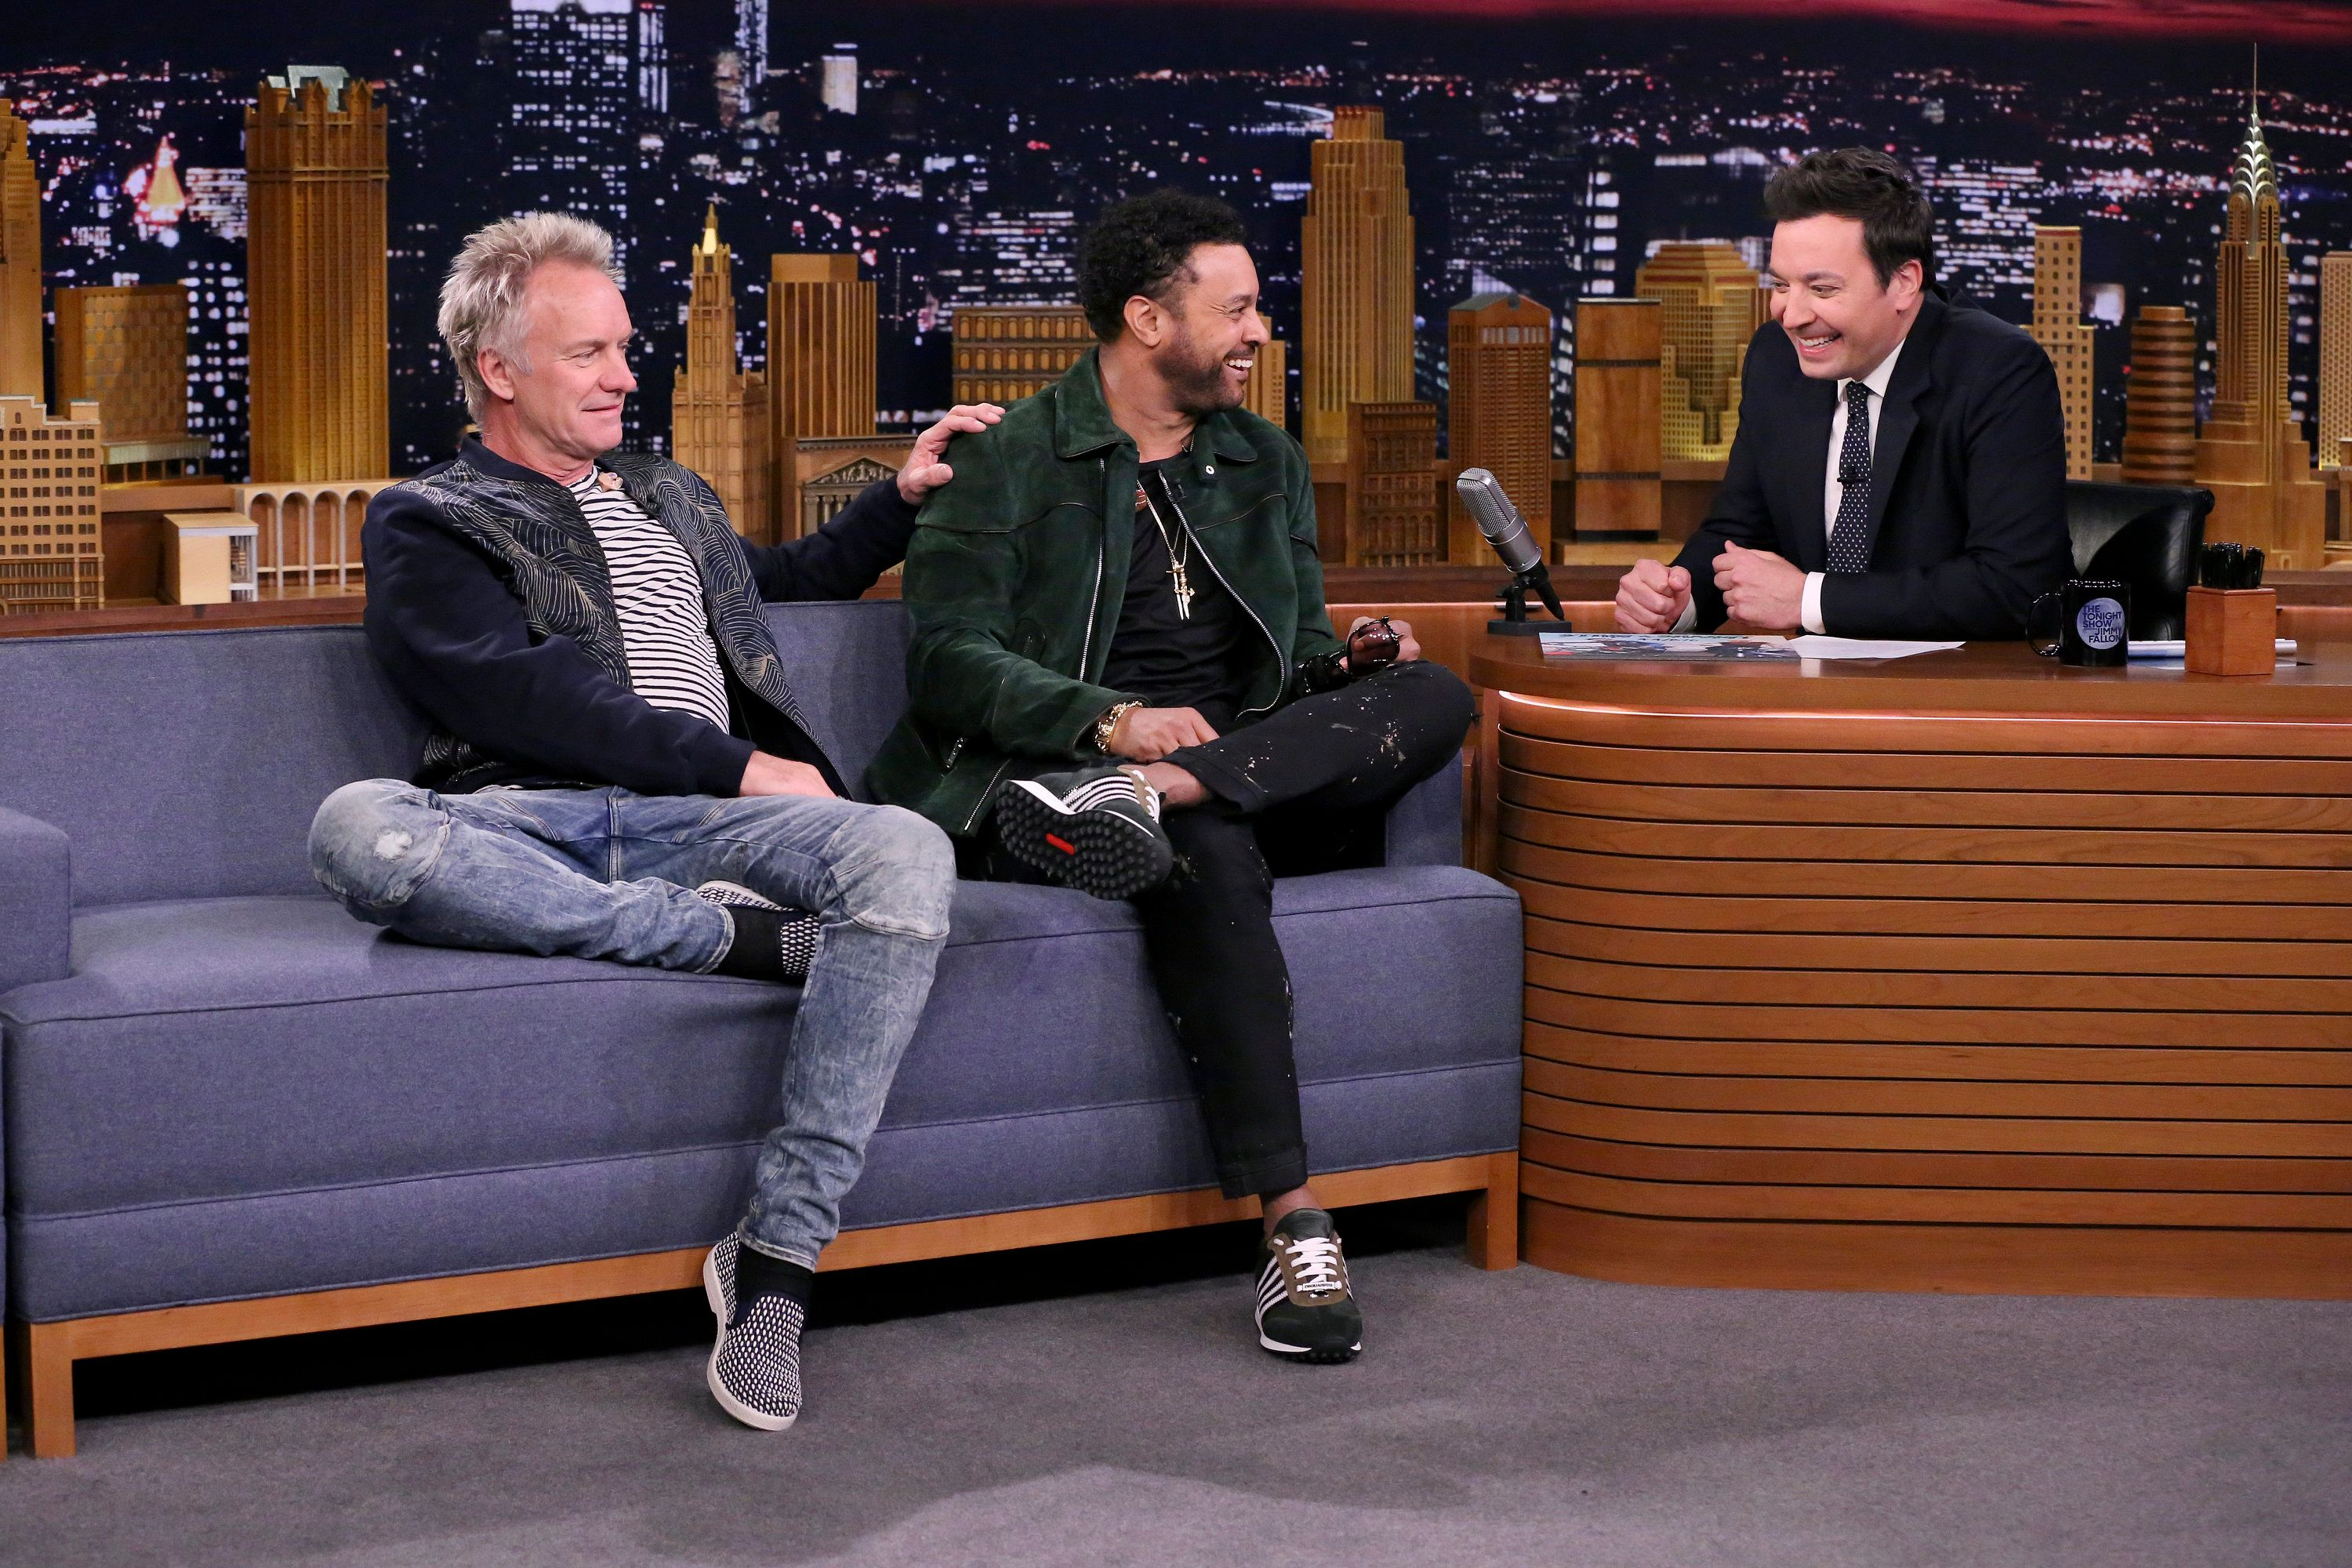 THE TONIGHT SHOW STARRING JIMMY FALLON -- Episode 0856 -- Pictured: (l-r) Musicians Sting & Shaggy during an interview with host Jimmy Fallon on April 23, 2018 -- (Photo by: Andrew Lipovsky/NBC/NBCU Photo Bank via Getty Images)